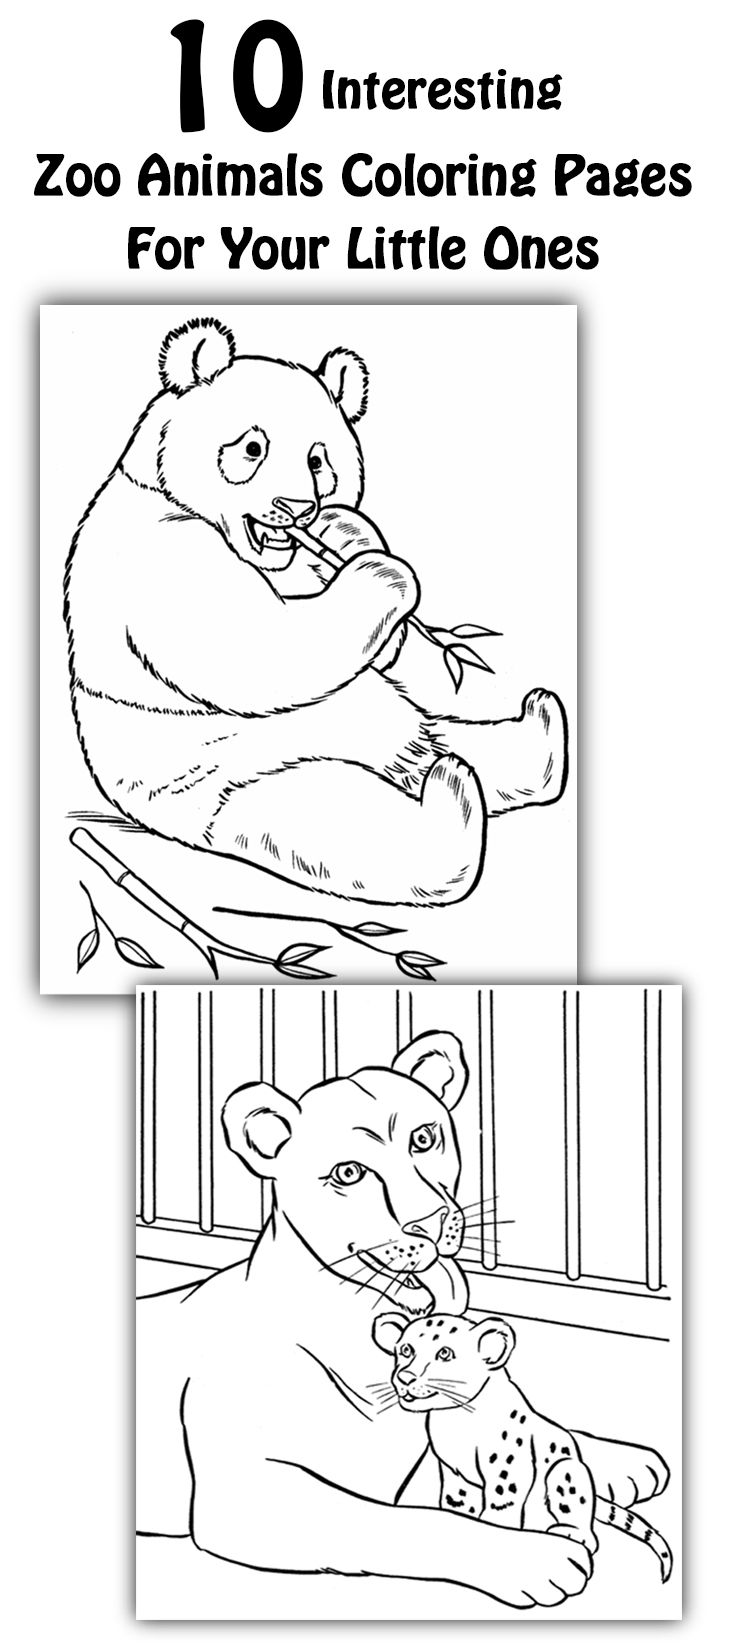 Top 25 Free Printable Zoo Coloring Pages Online | Pinterest